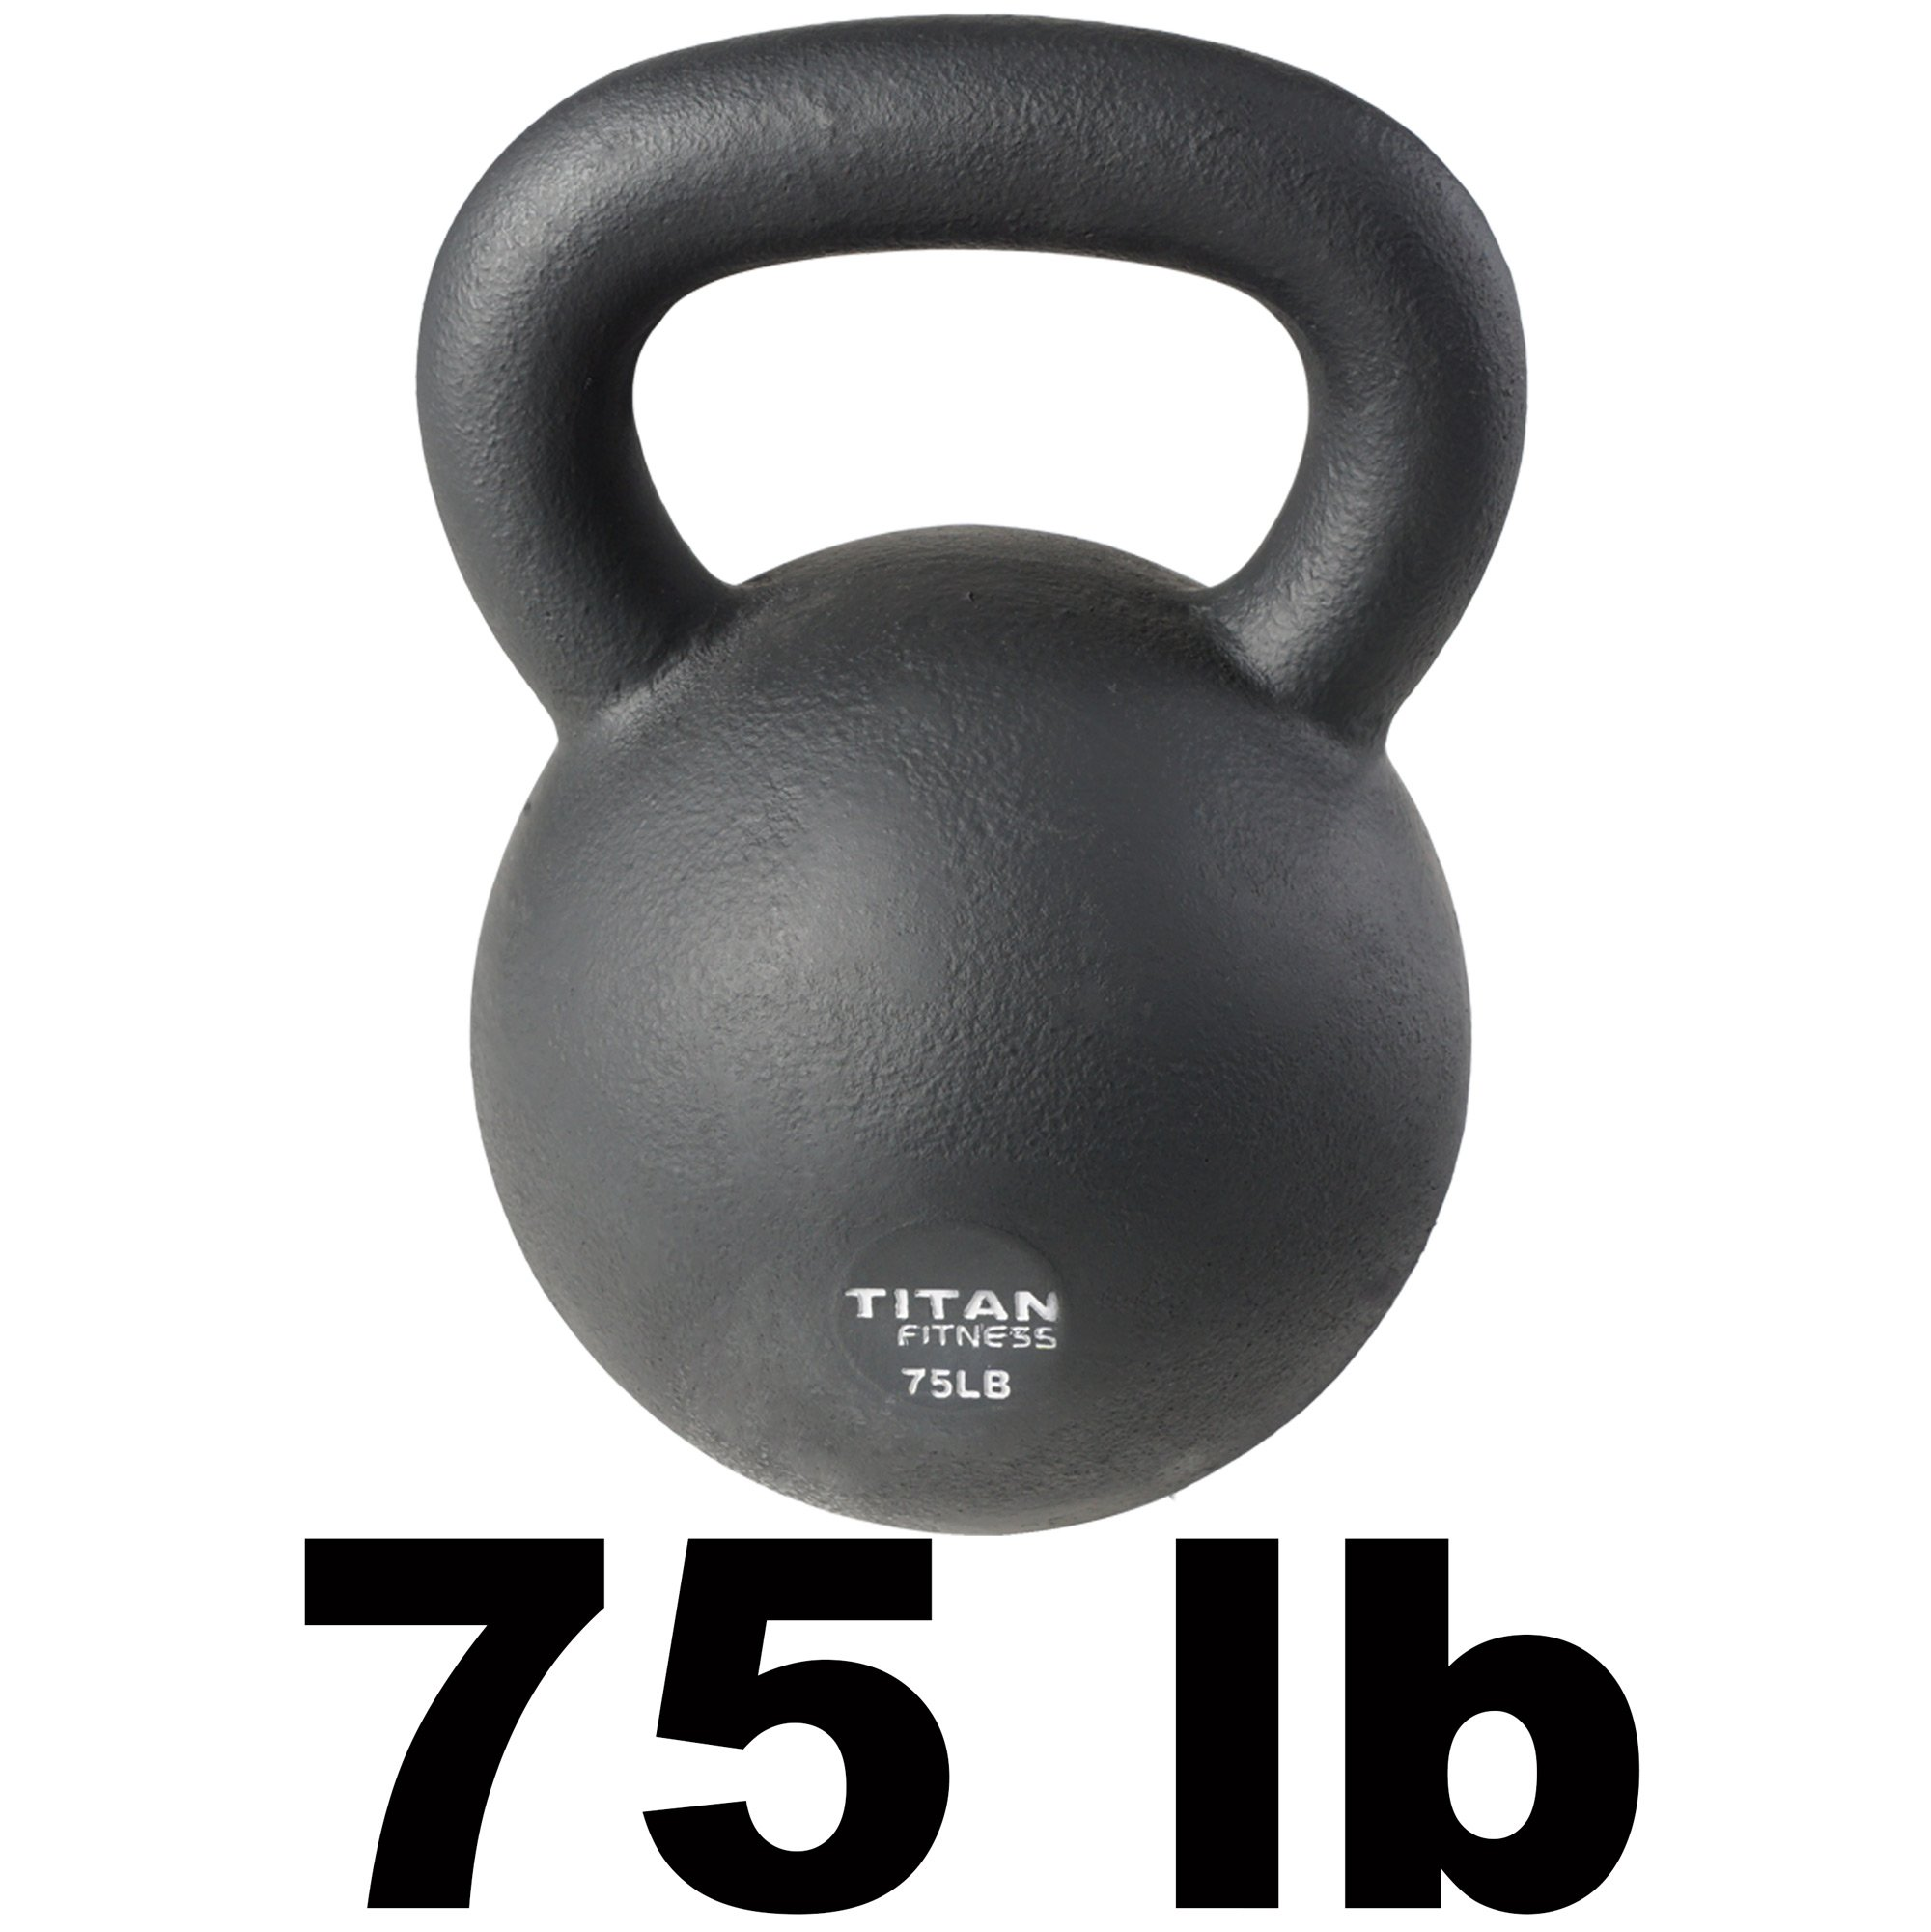 Cast Iron Kettlebell Weight 75 lb Natural Solid Titan Fitness Workout Swing by Titan Fitness (Image #1)